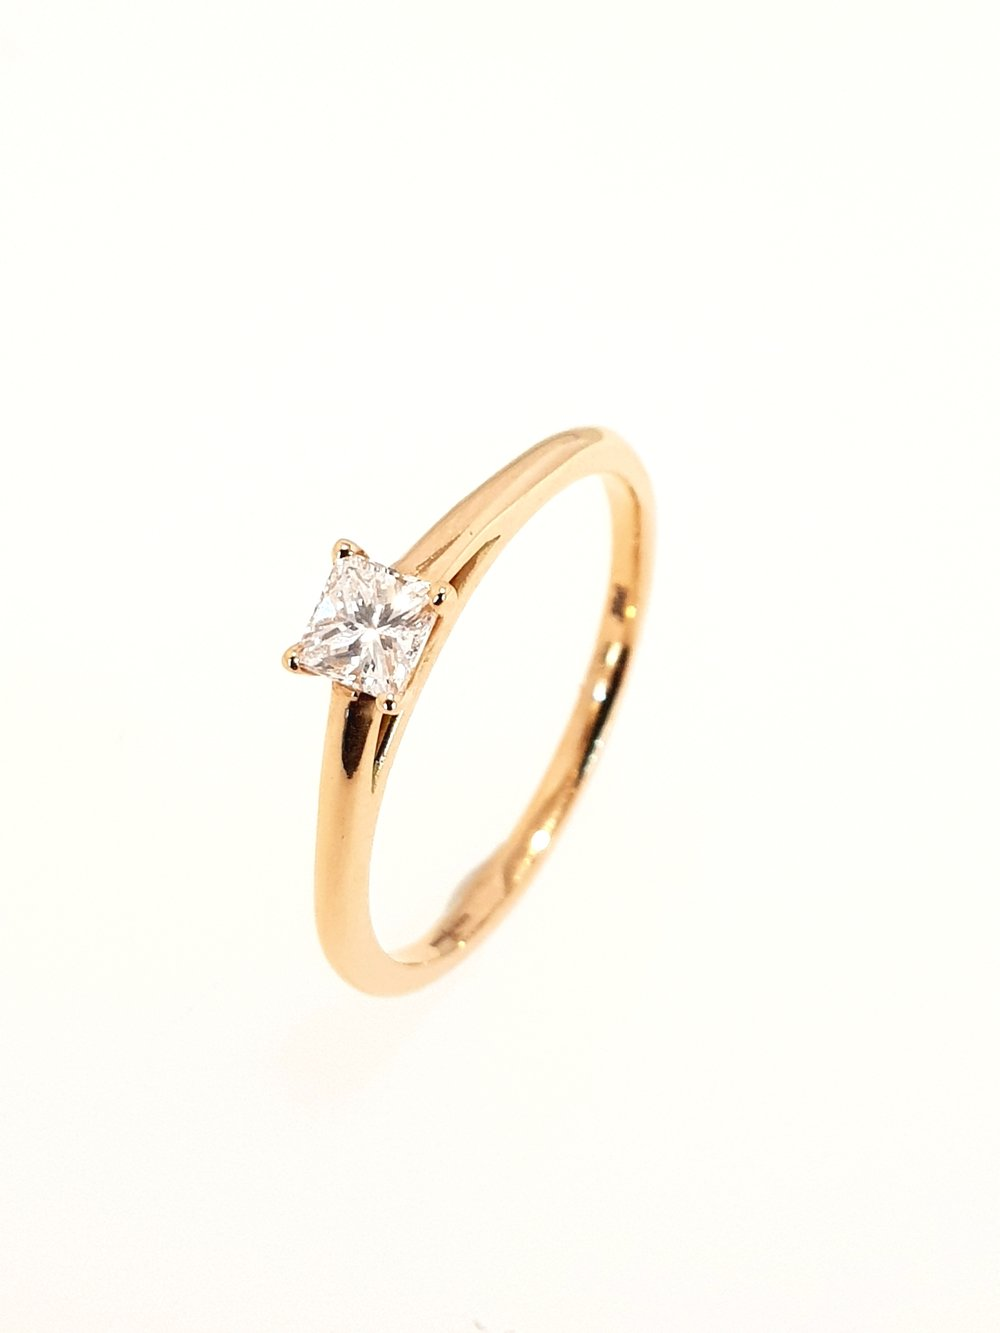 18ct Rose Gold Diamond Ring, Princess Cut  .25ct, G, Si1  Stock Code: N8522  £1100